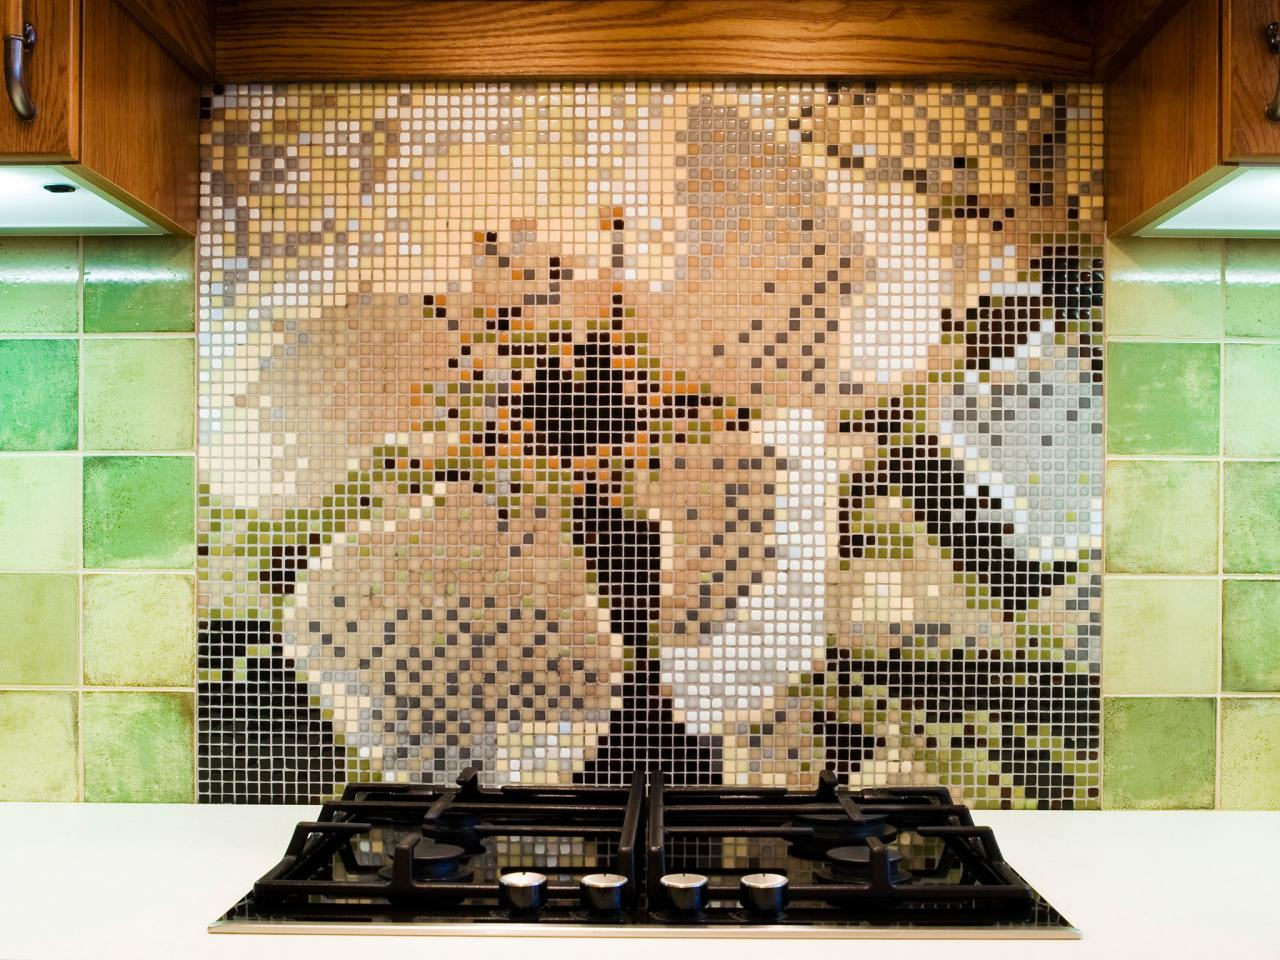 Charmant Creative Backsplash Ideas